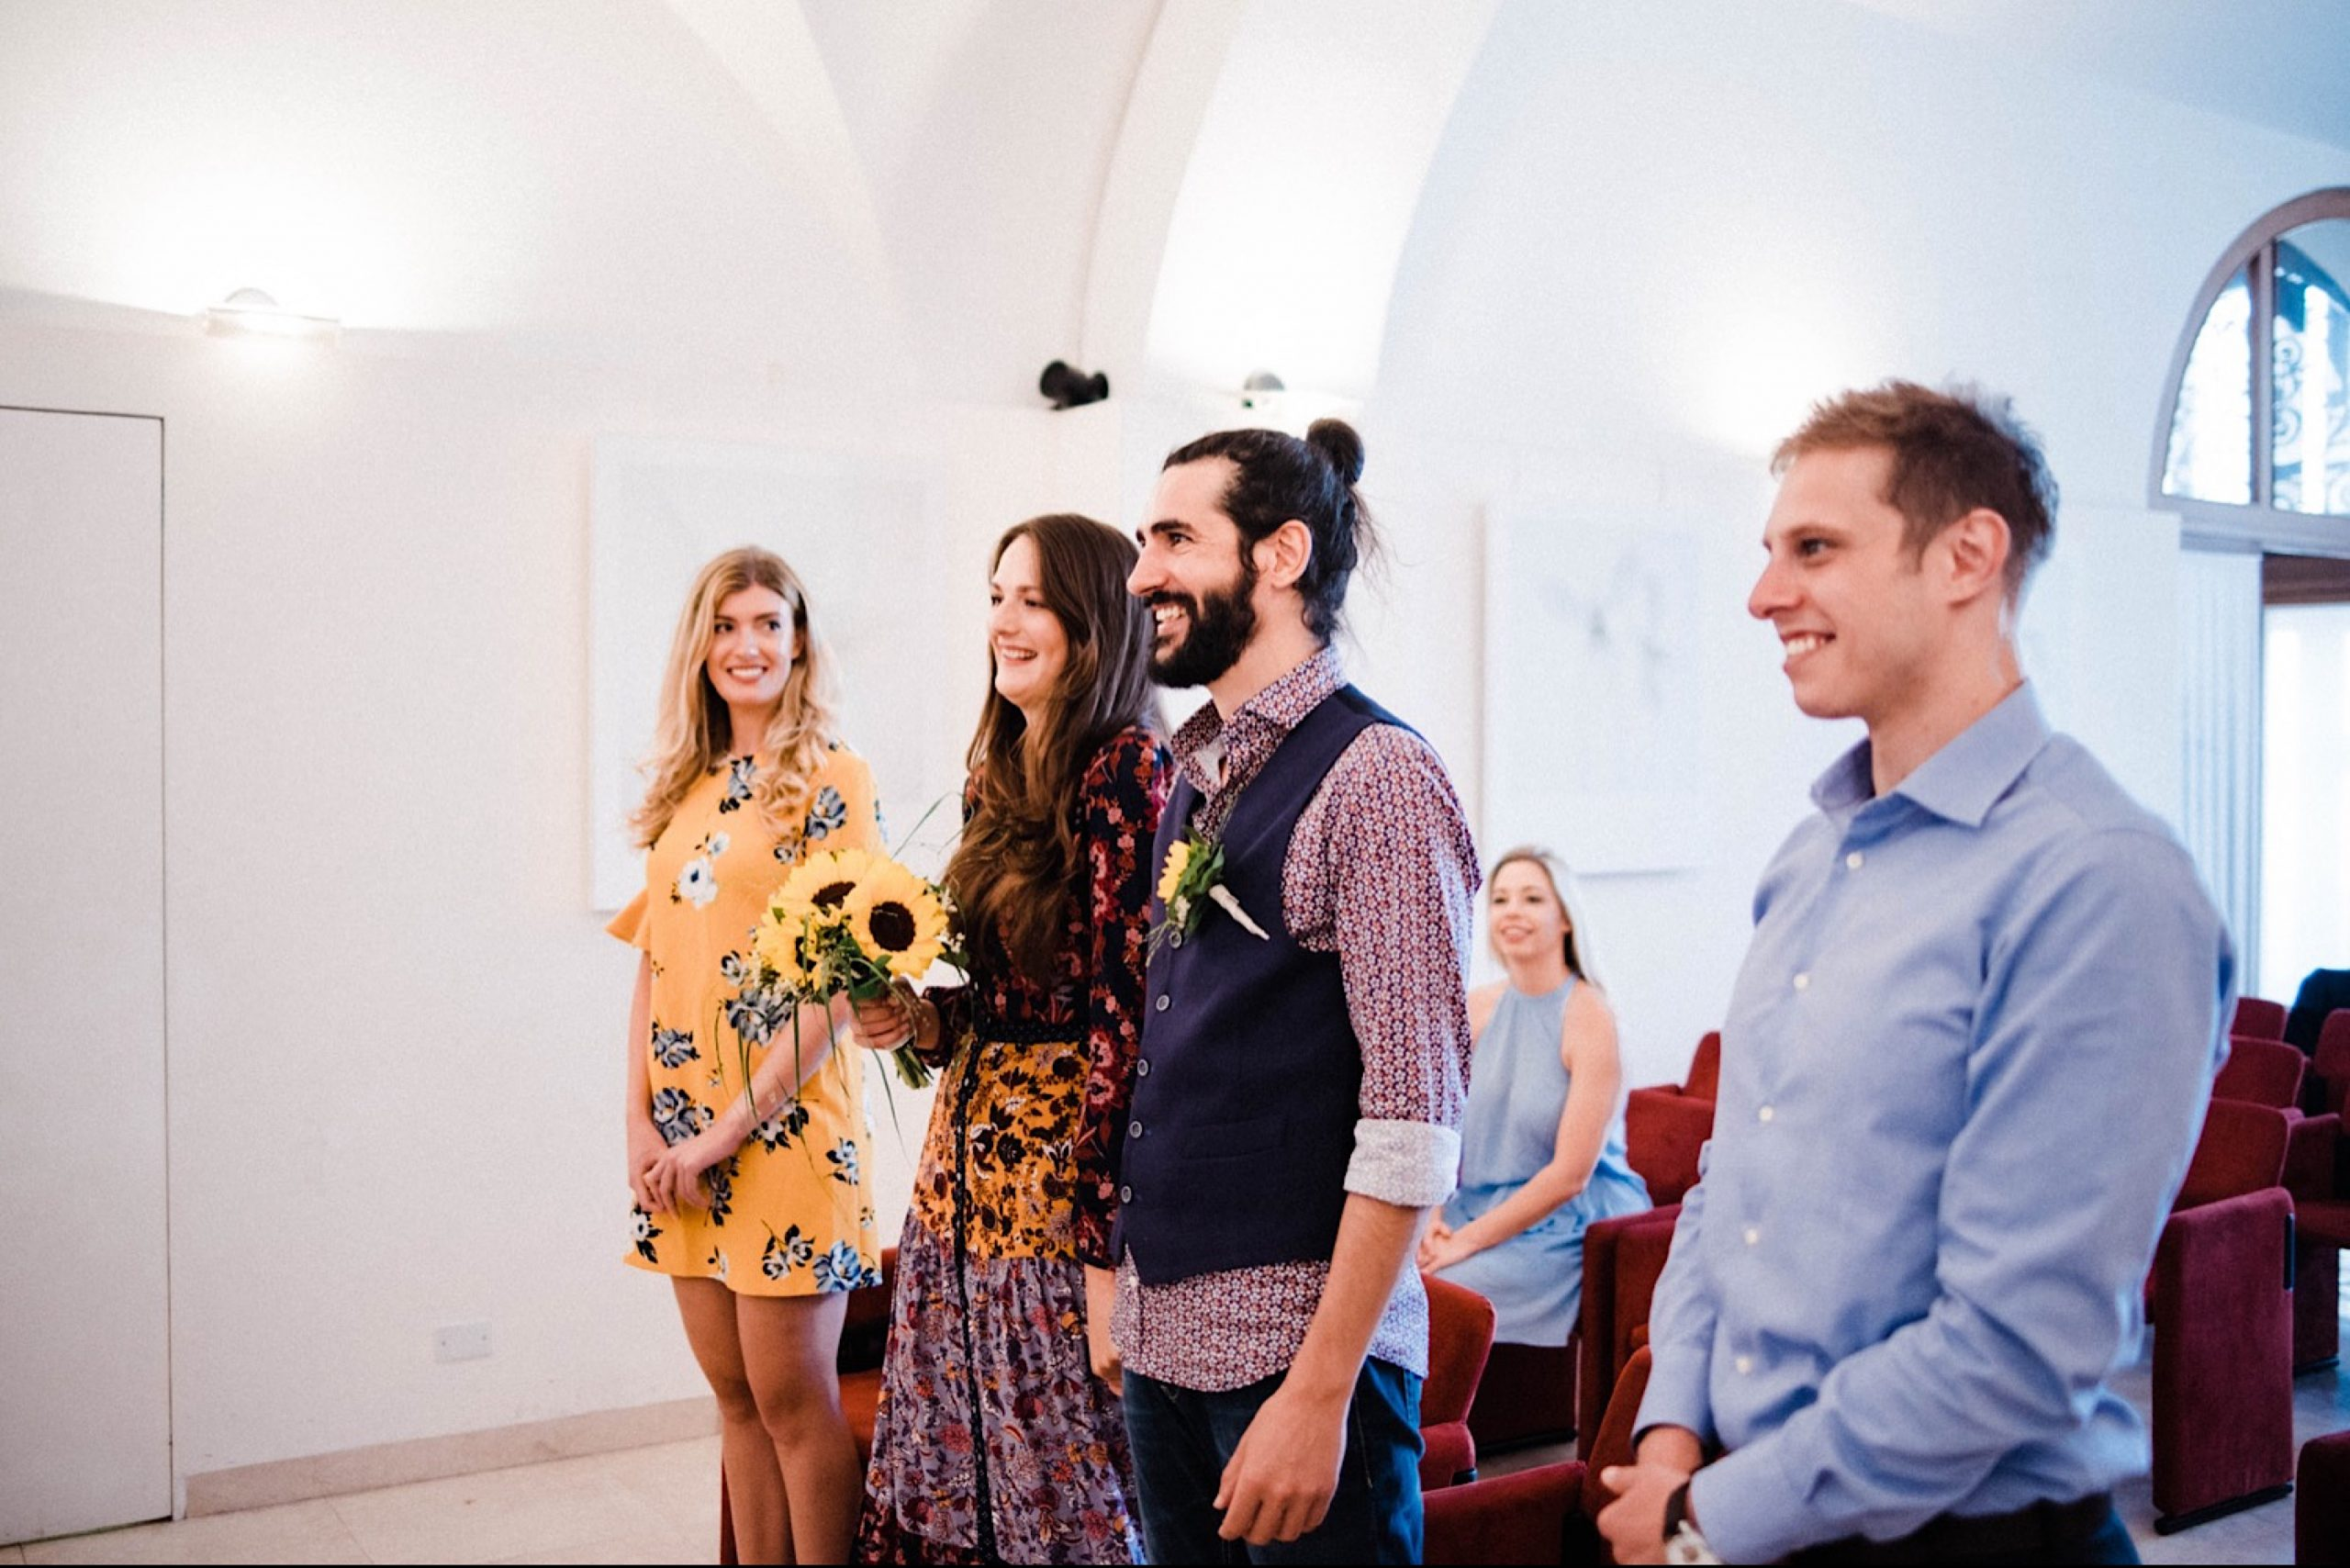 Wide photo of a bride, a groom and their witnesses in the Sala Bobi Bazlen, Trieste.